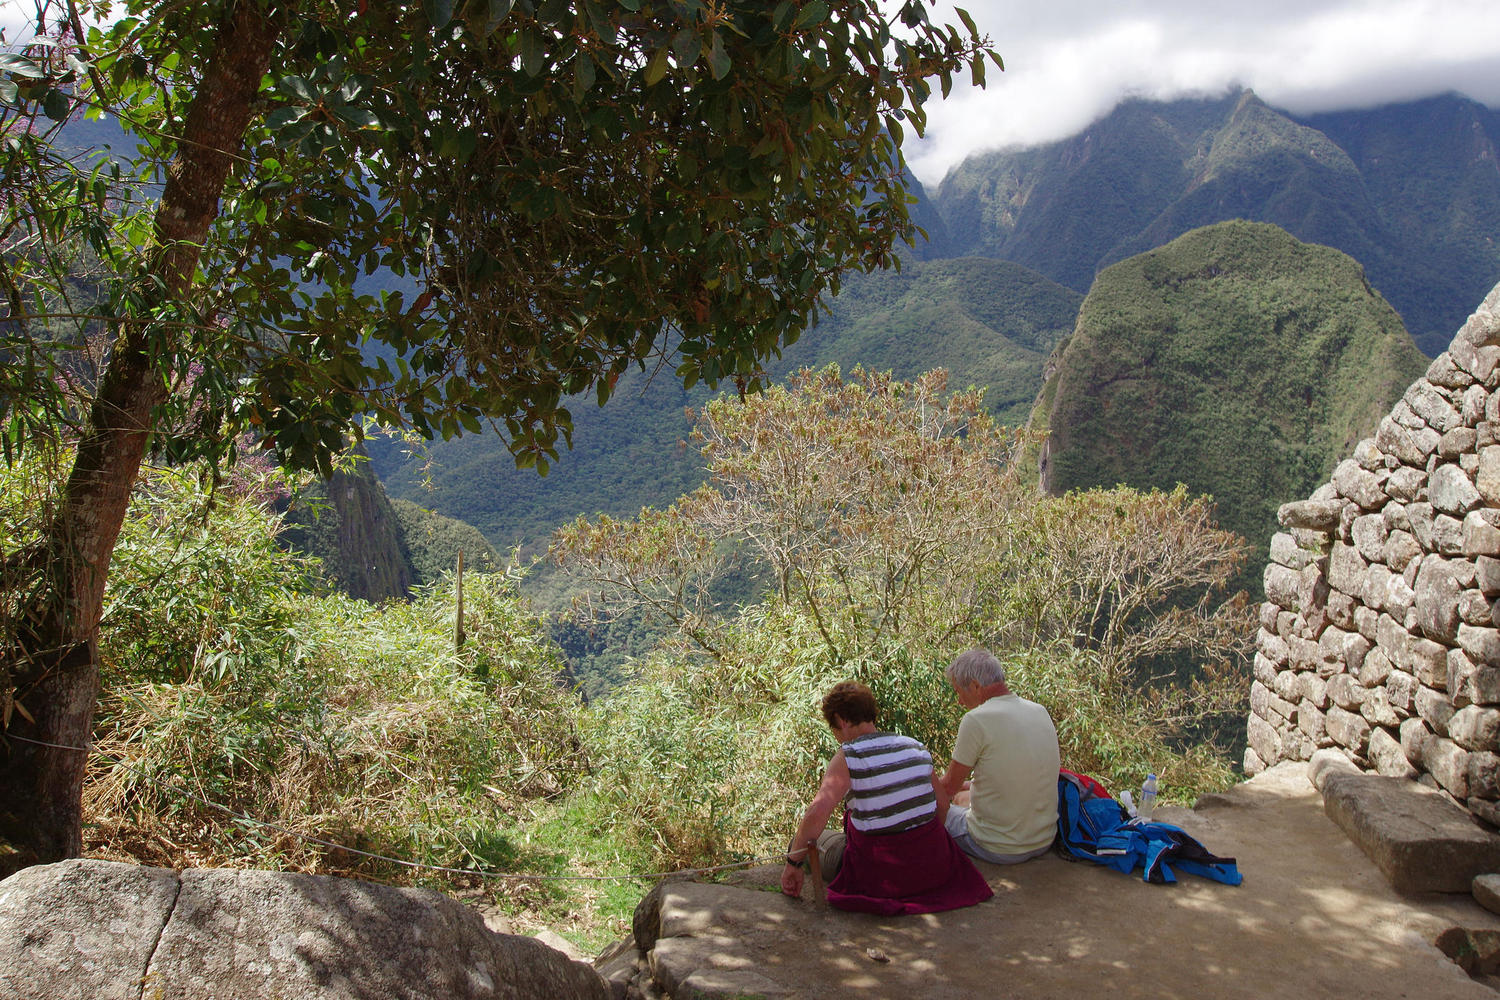 Finding a quiet spot at Machu Picchu